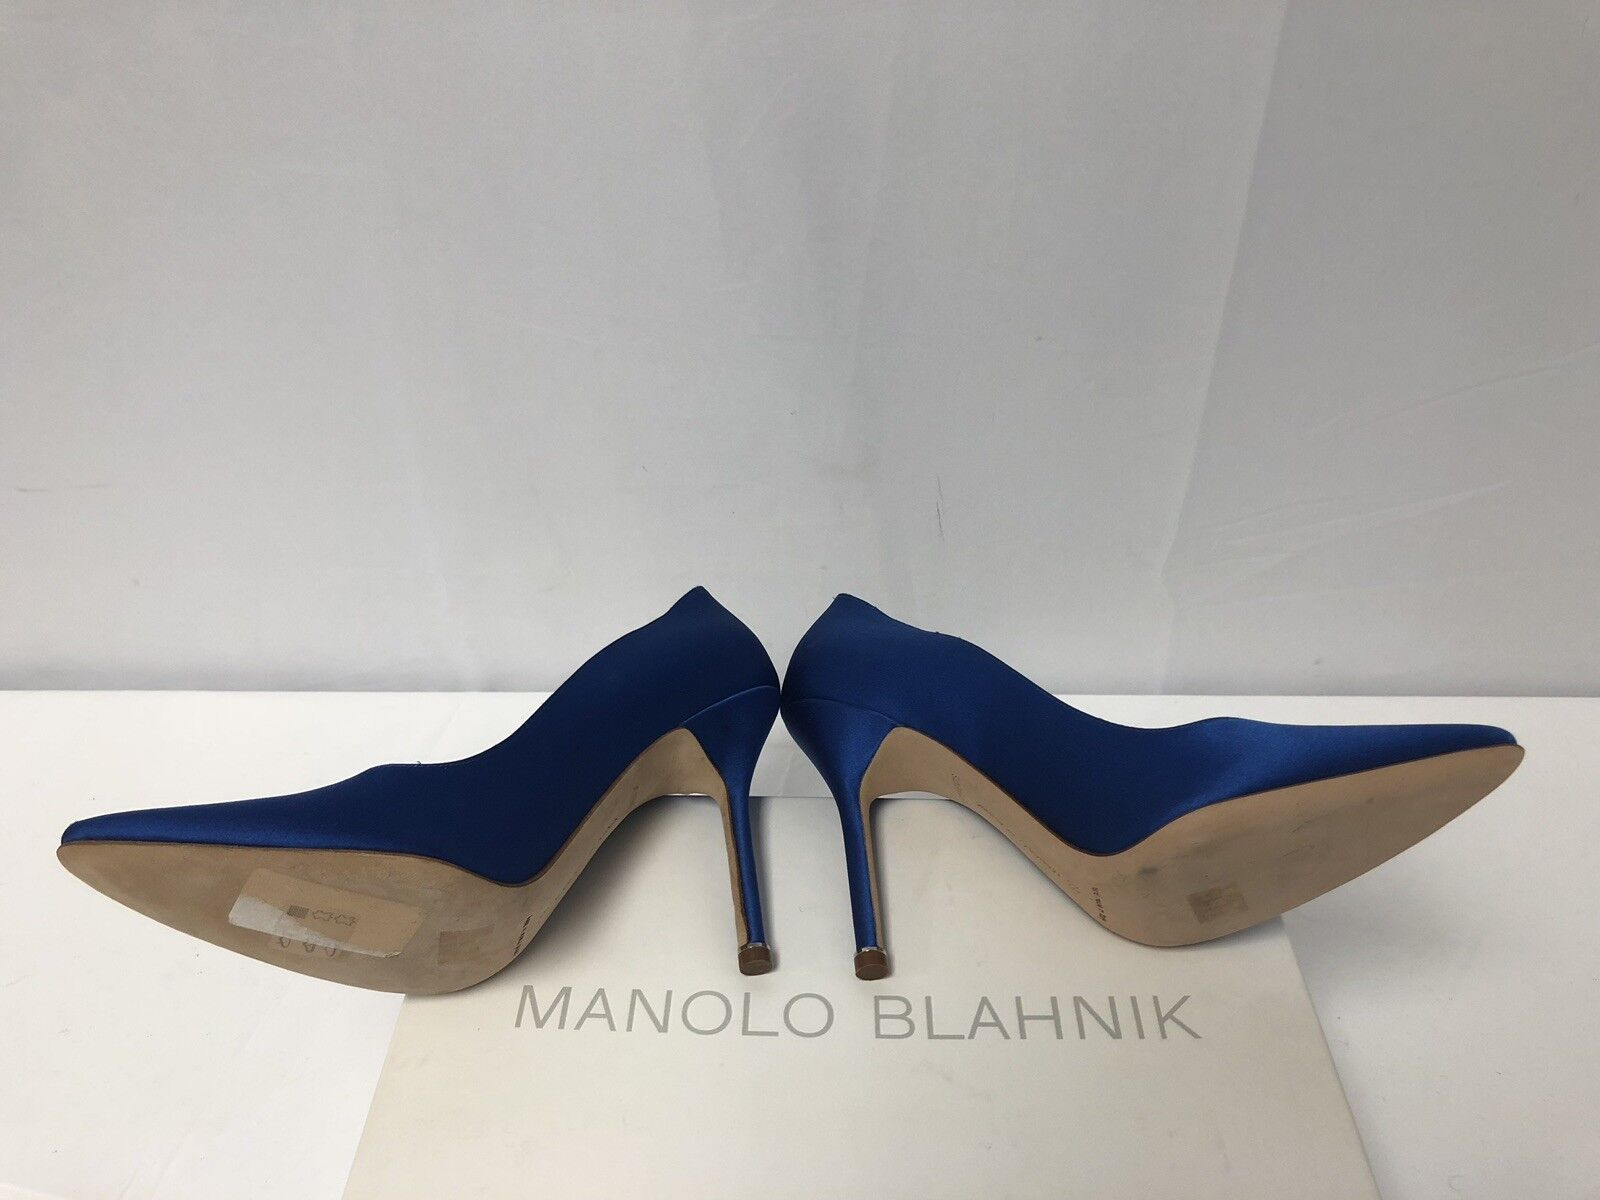 New Manolo Blahnik X Vetements bluee Satin Satin Satin Scripted Pumps Size 39EU 9US  1725.00 4ebb3e